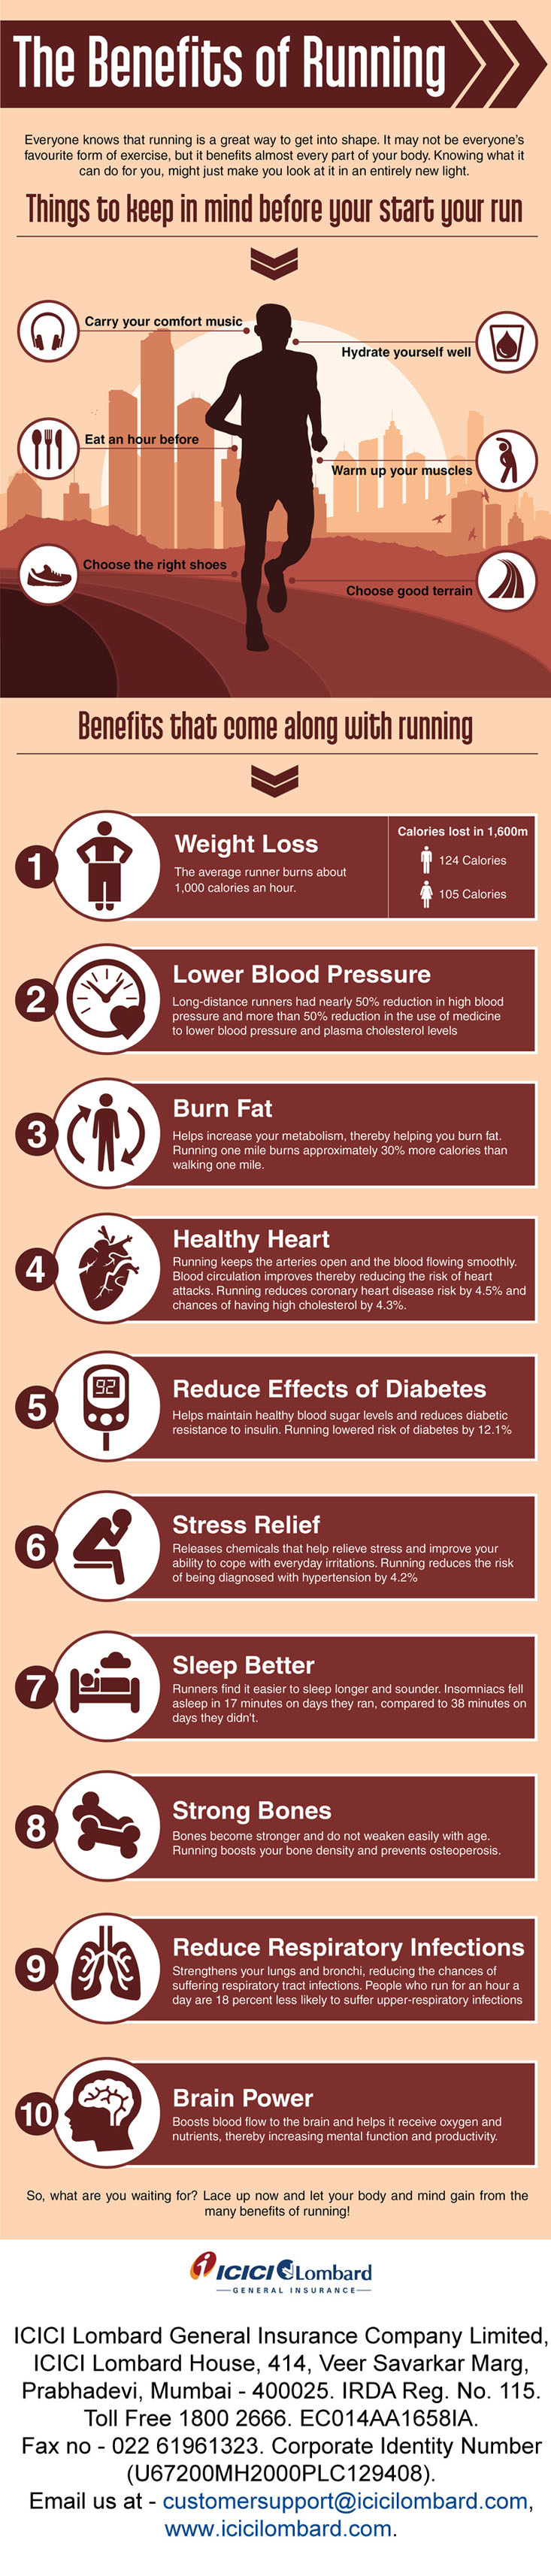 [Infographic] The Benefits of Running to Health